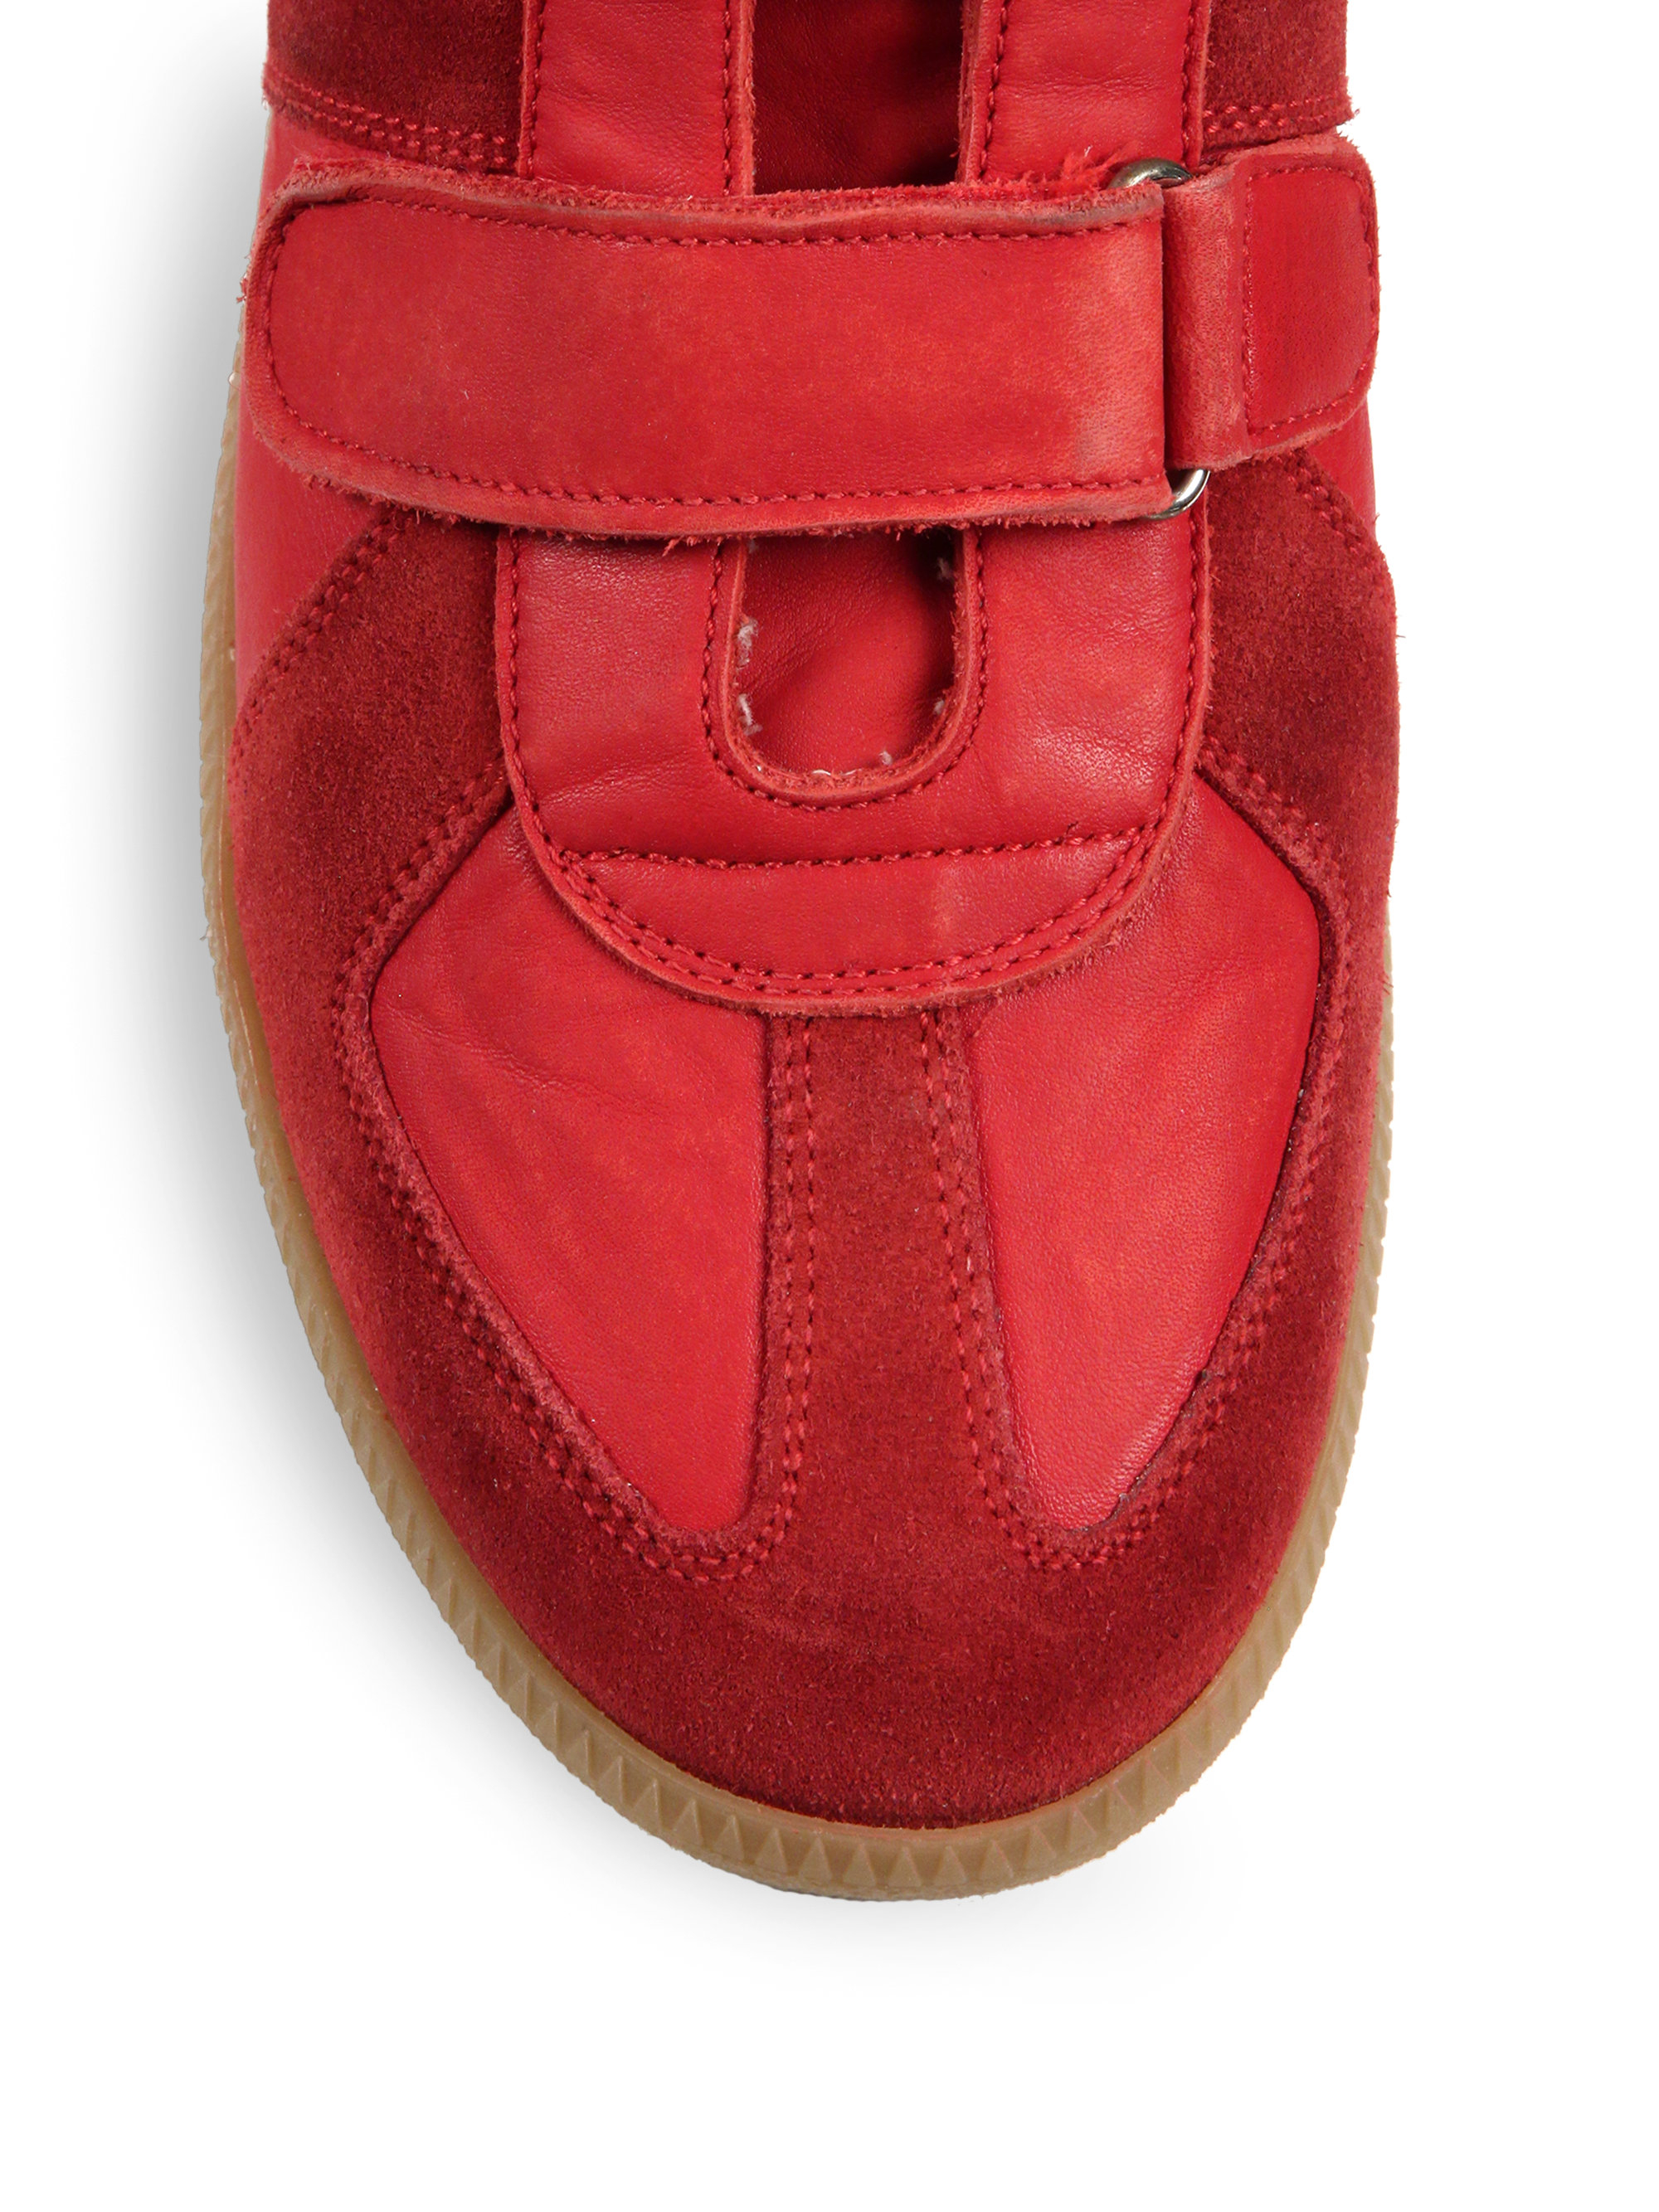 Maison margiela triple strap suede high top sneakers in for Maison de margiela